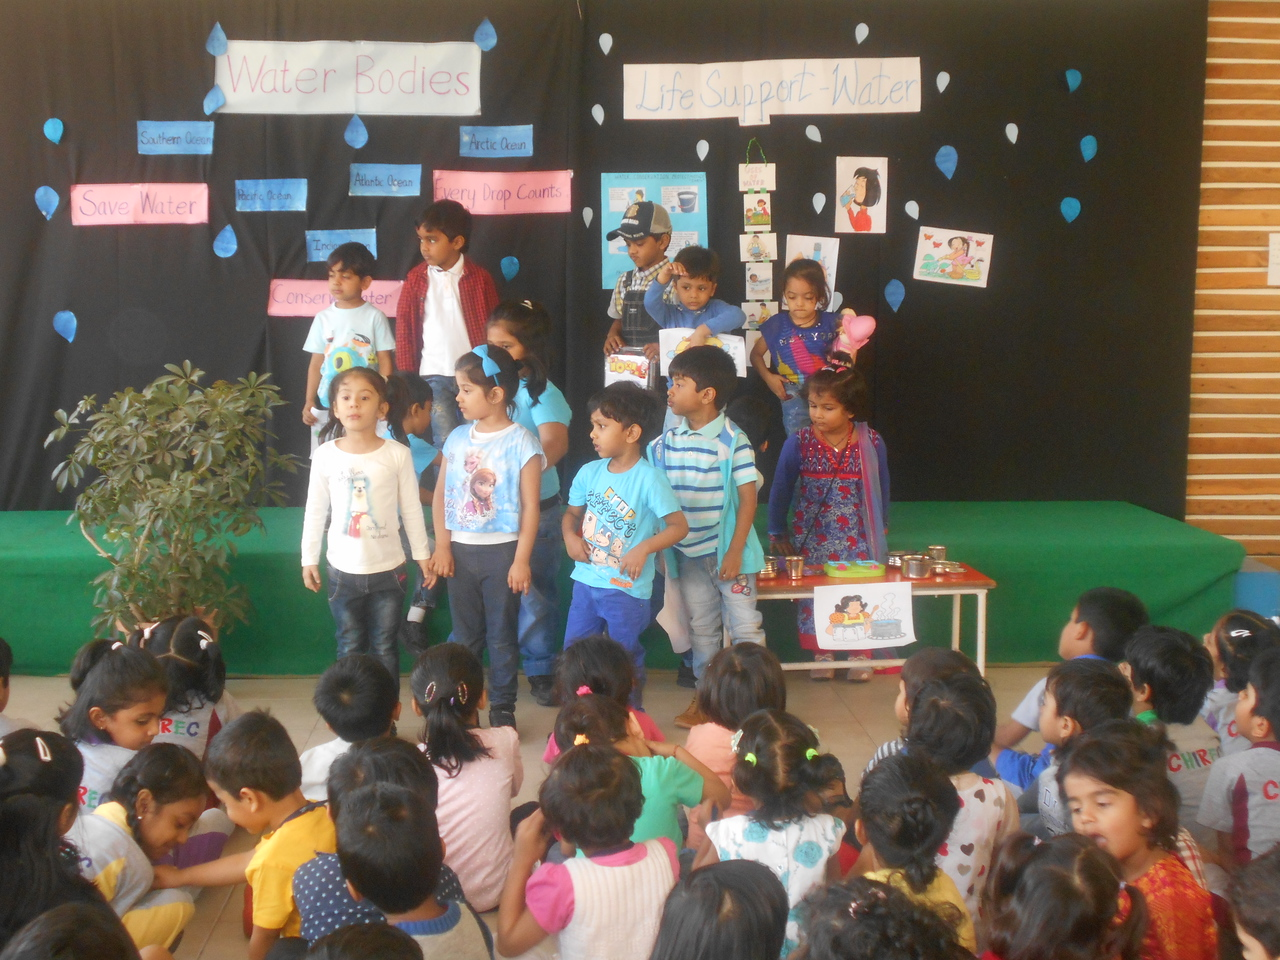 TOPIC PRESENTATION IN ASSEMBLY- LIFE SUPPORT- WATER